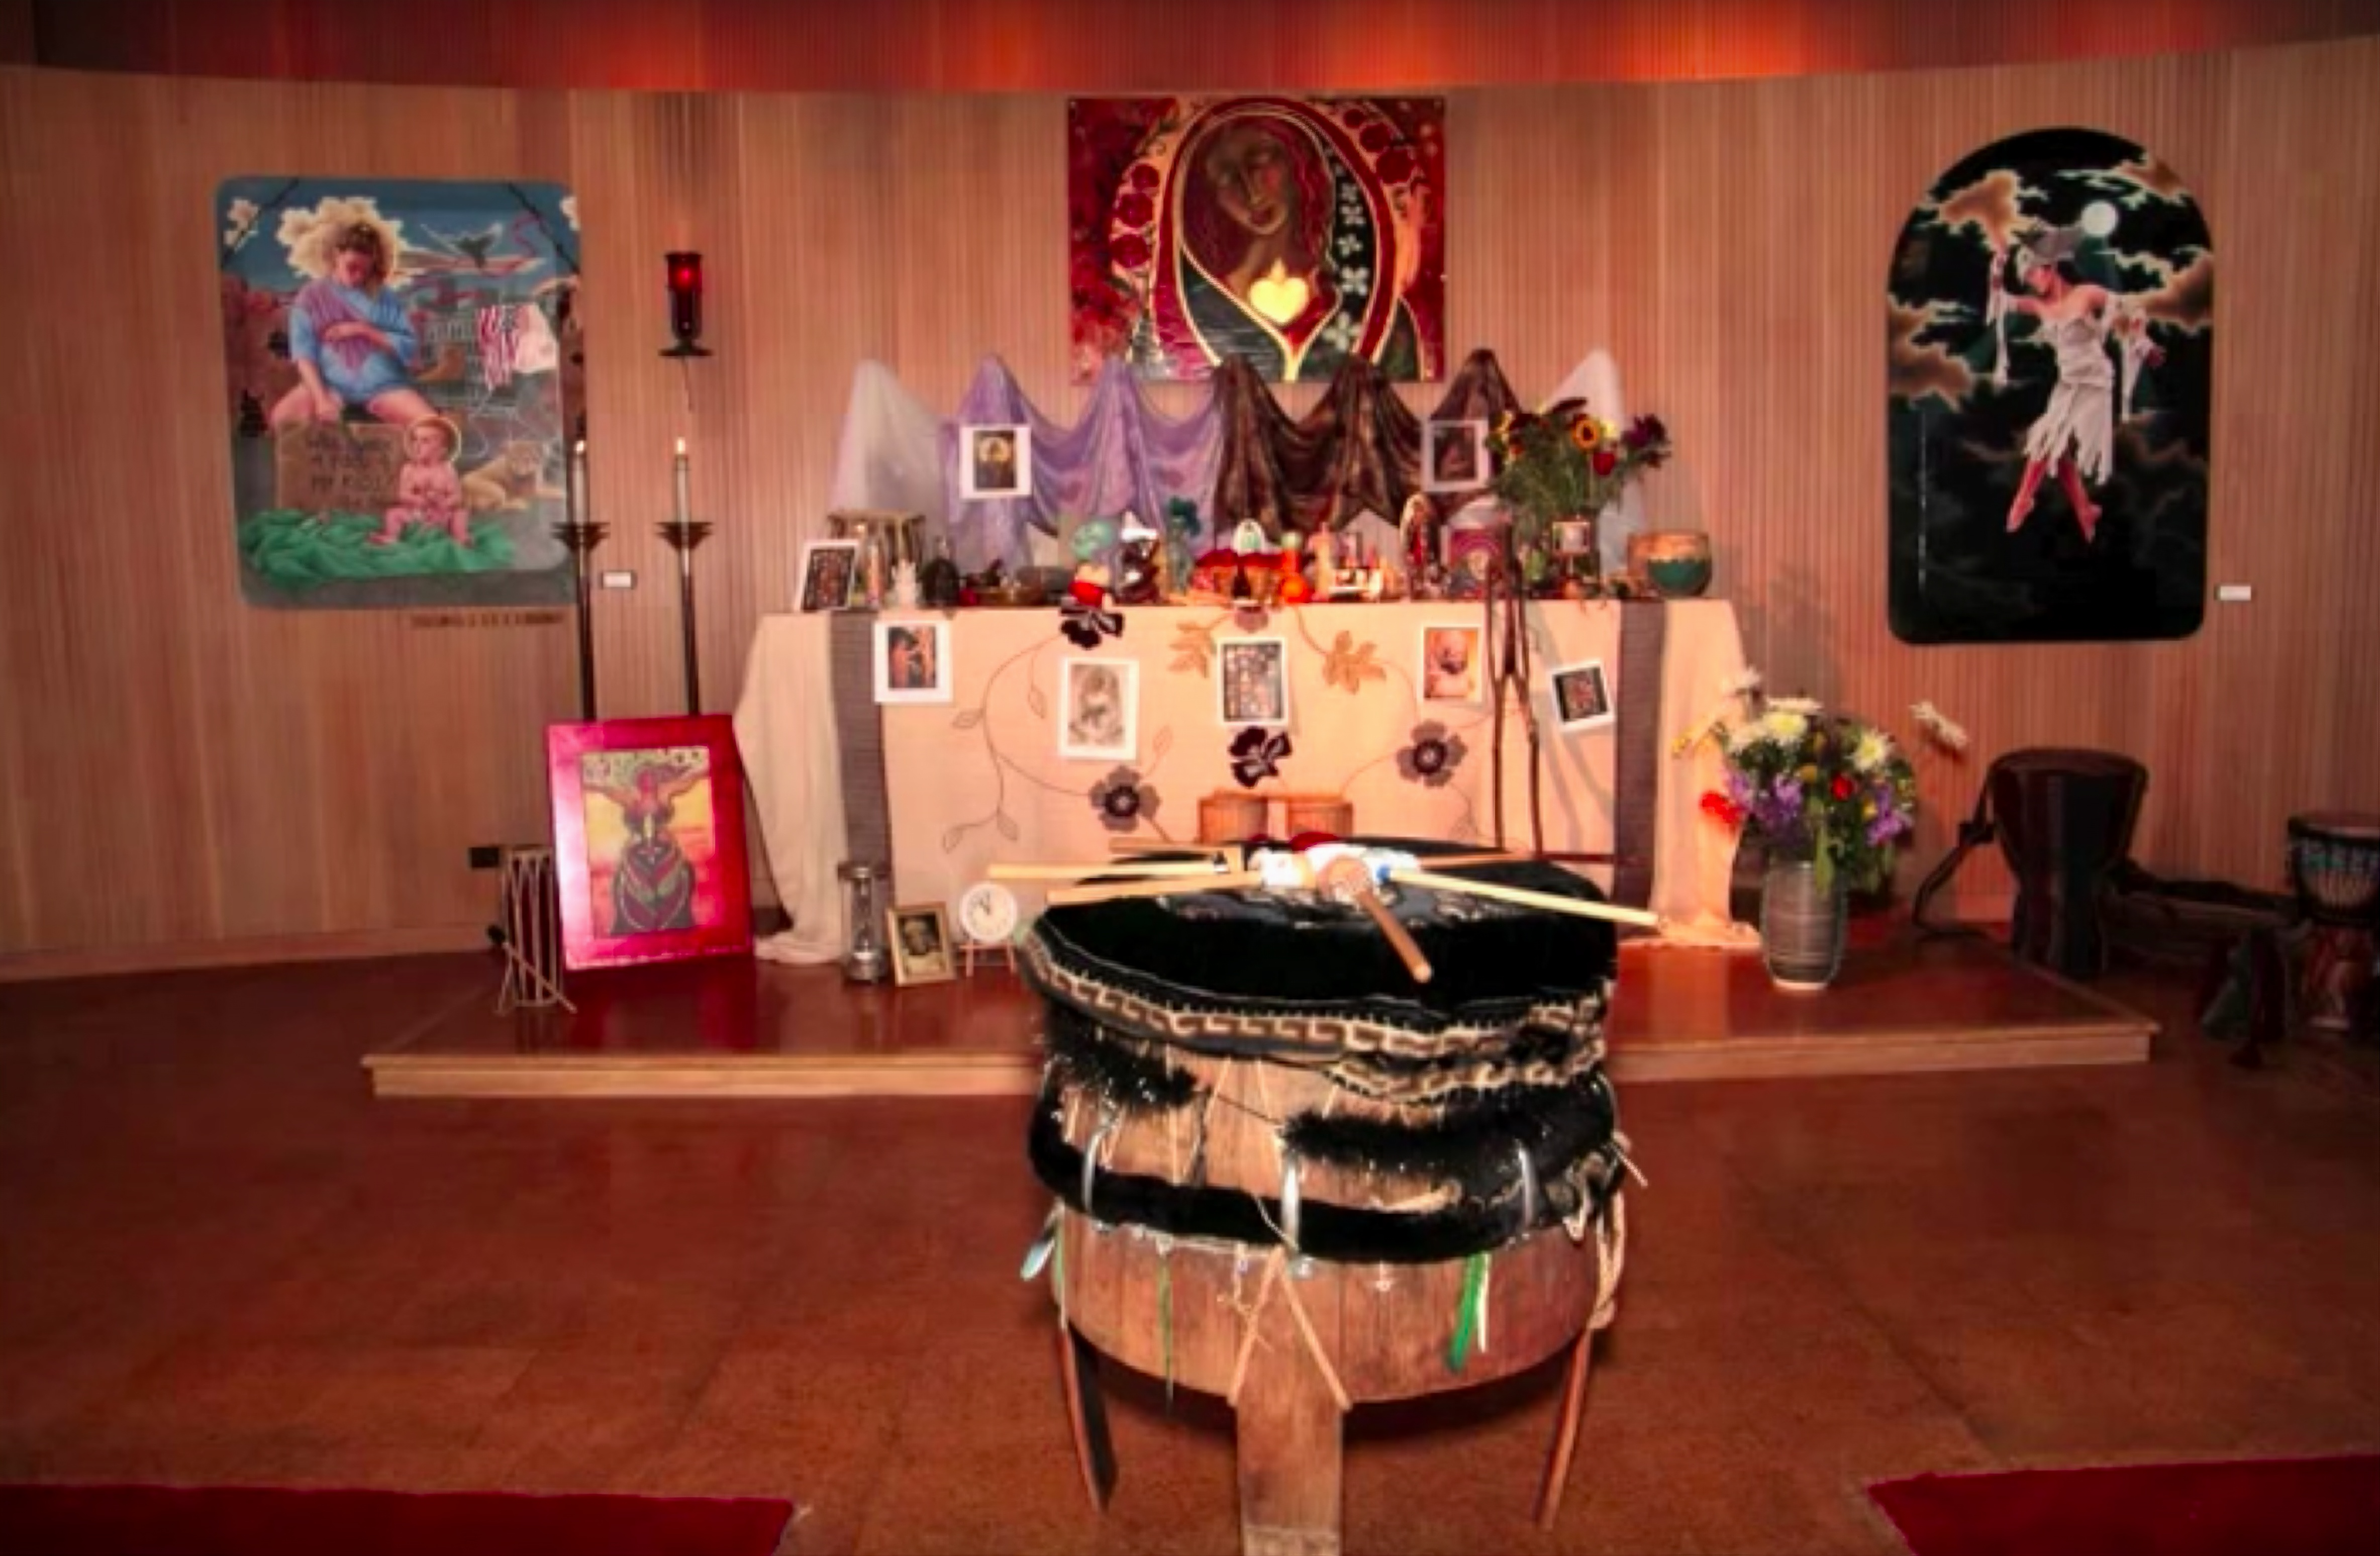 The altar at Ebenezer Lutheran. (Youtube)